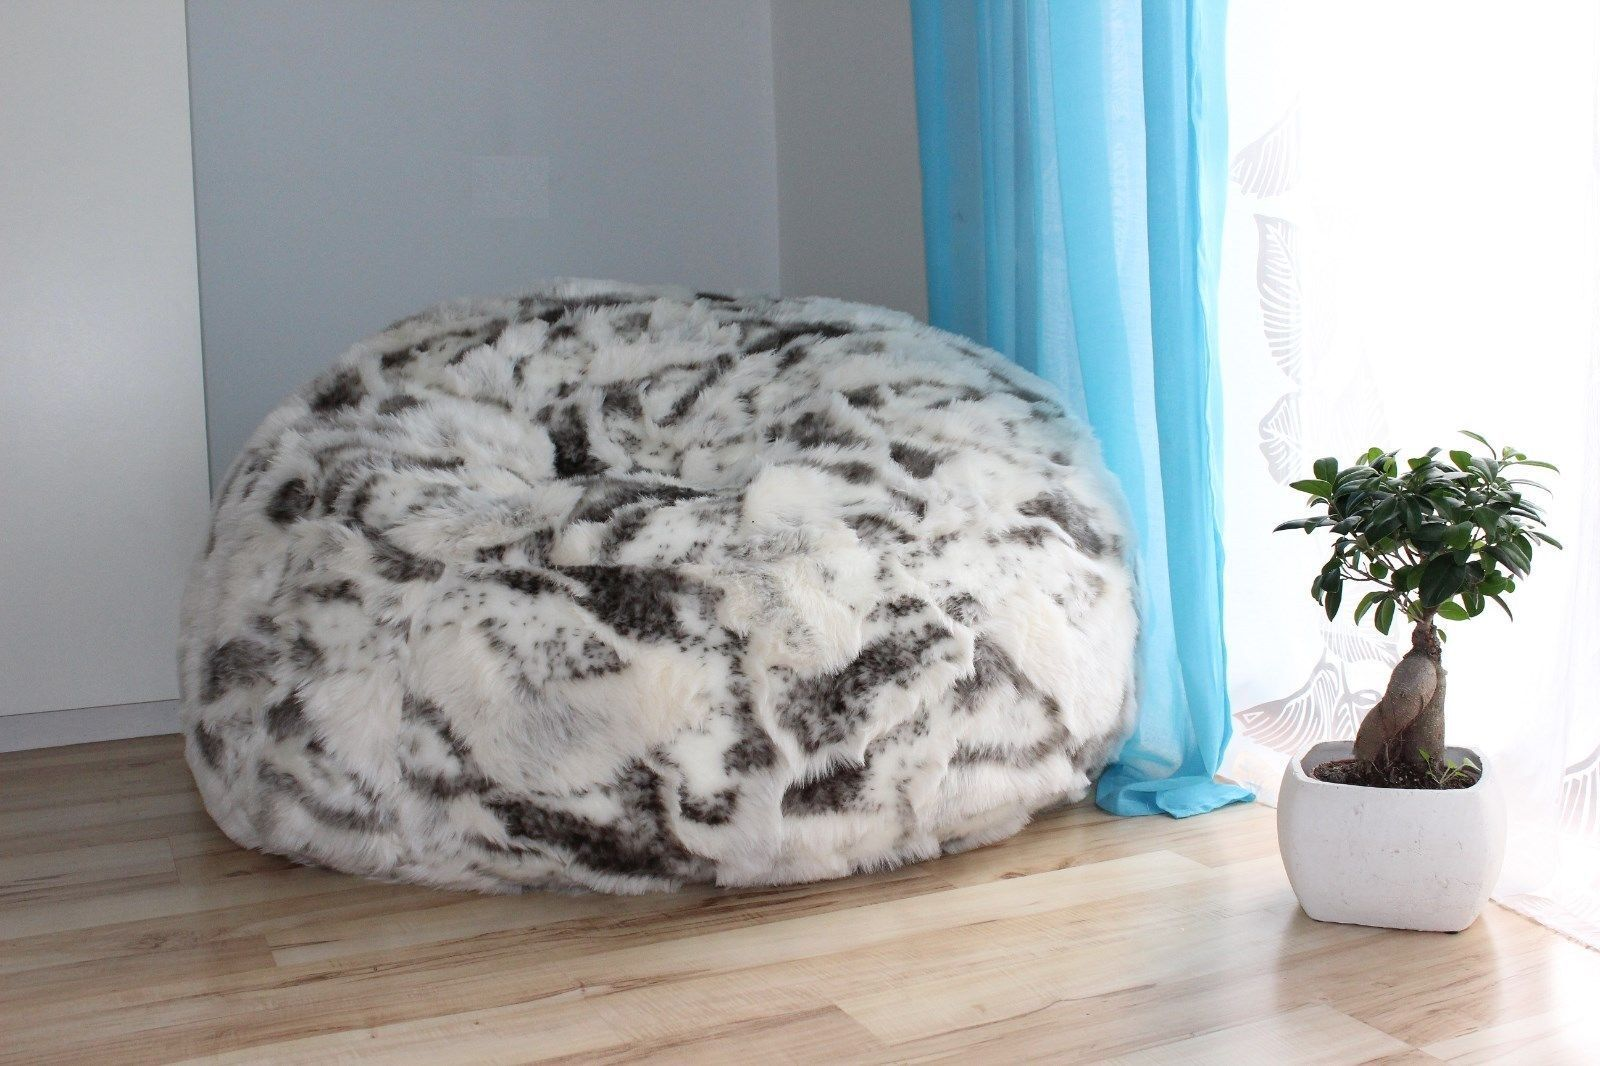 How To Make A Bean Bag Chair Cover